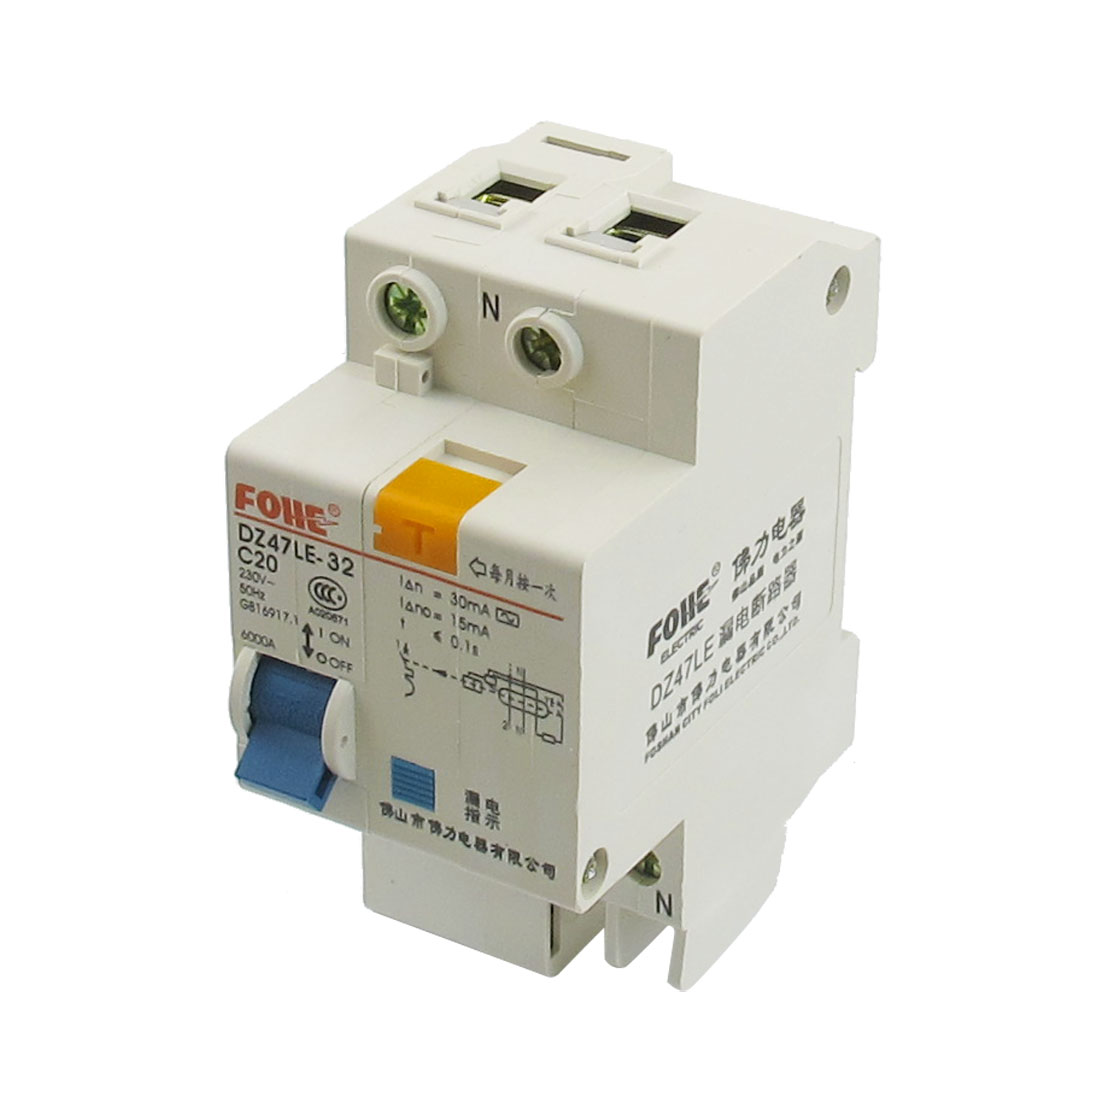 AC 230V 20A Single Pole Overload Protection Earth Leakage Circuit Breaker 1P+N